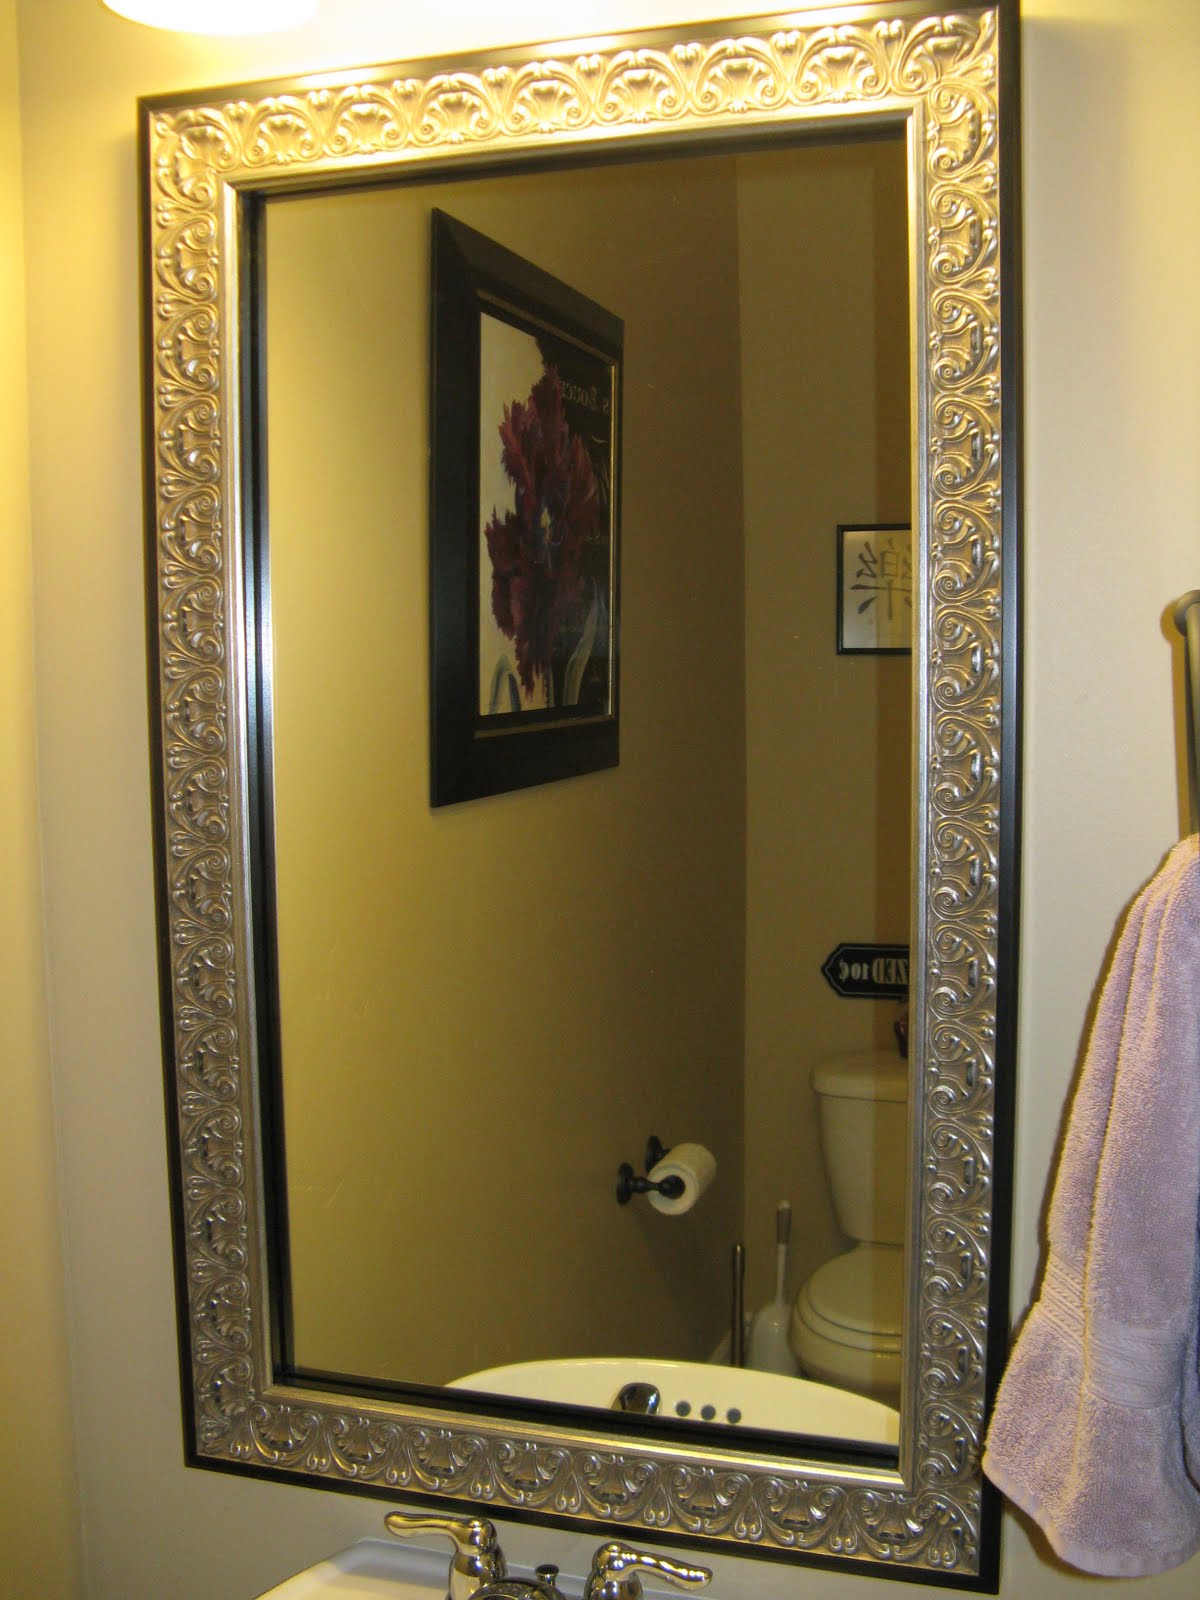 Do It Yourself Home Design: Reflected Design: Mirror Frame Kit